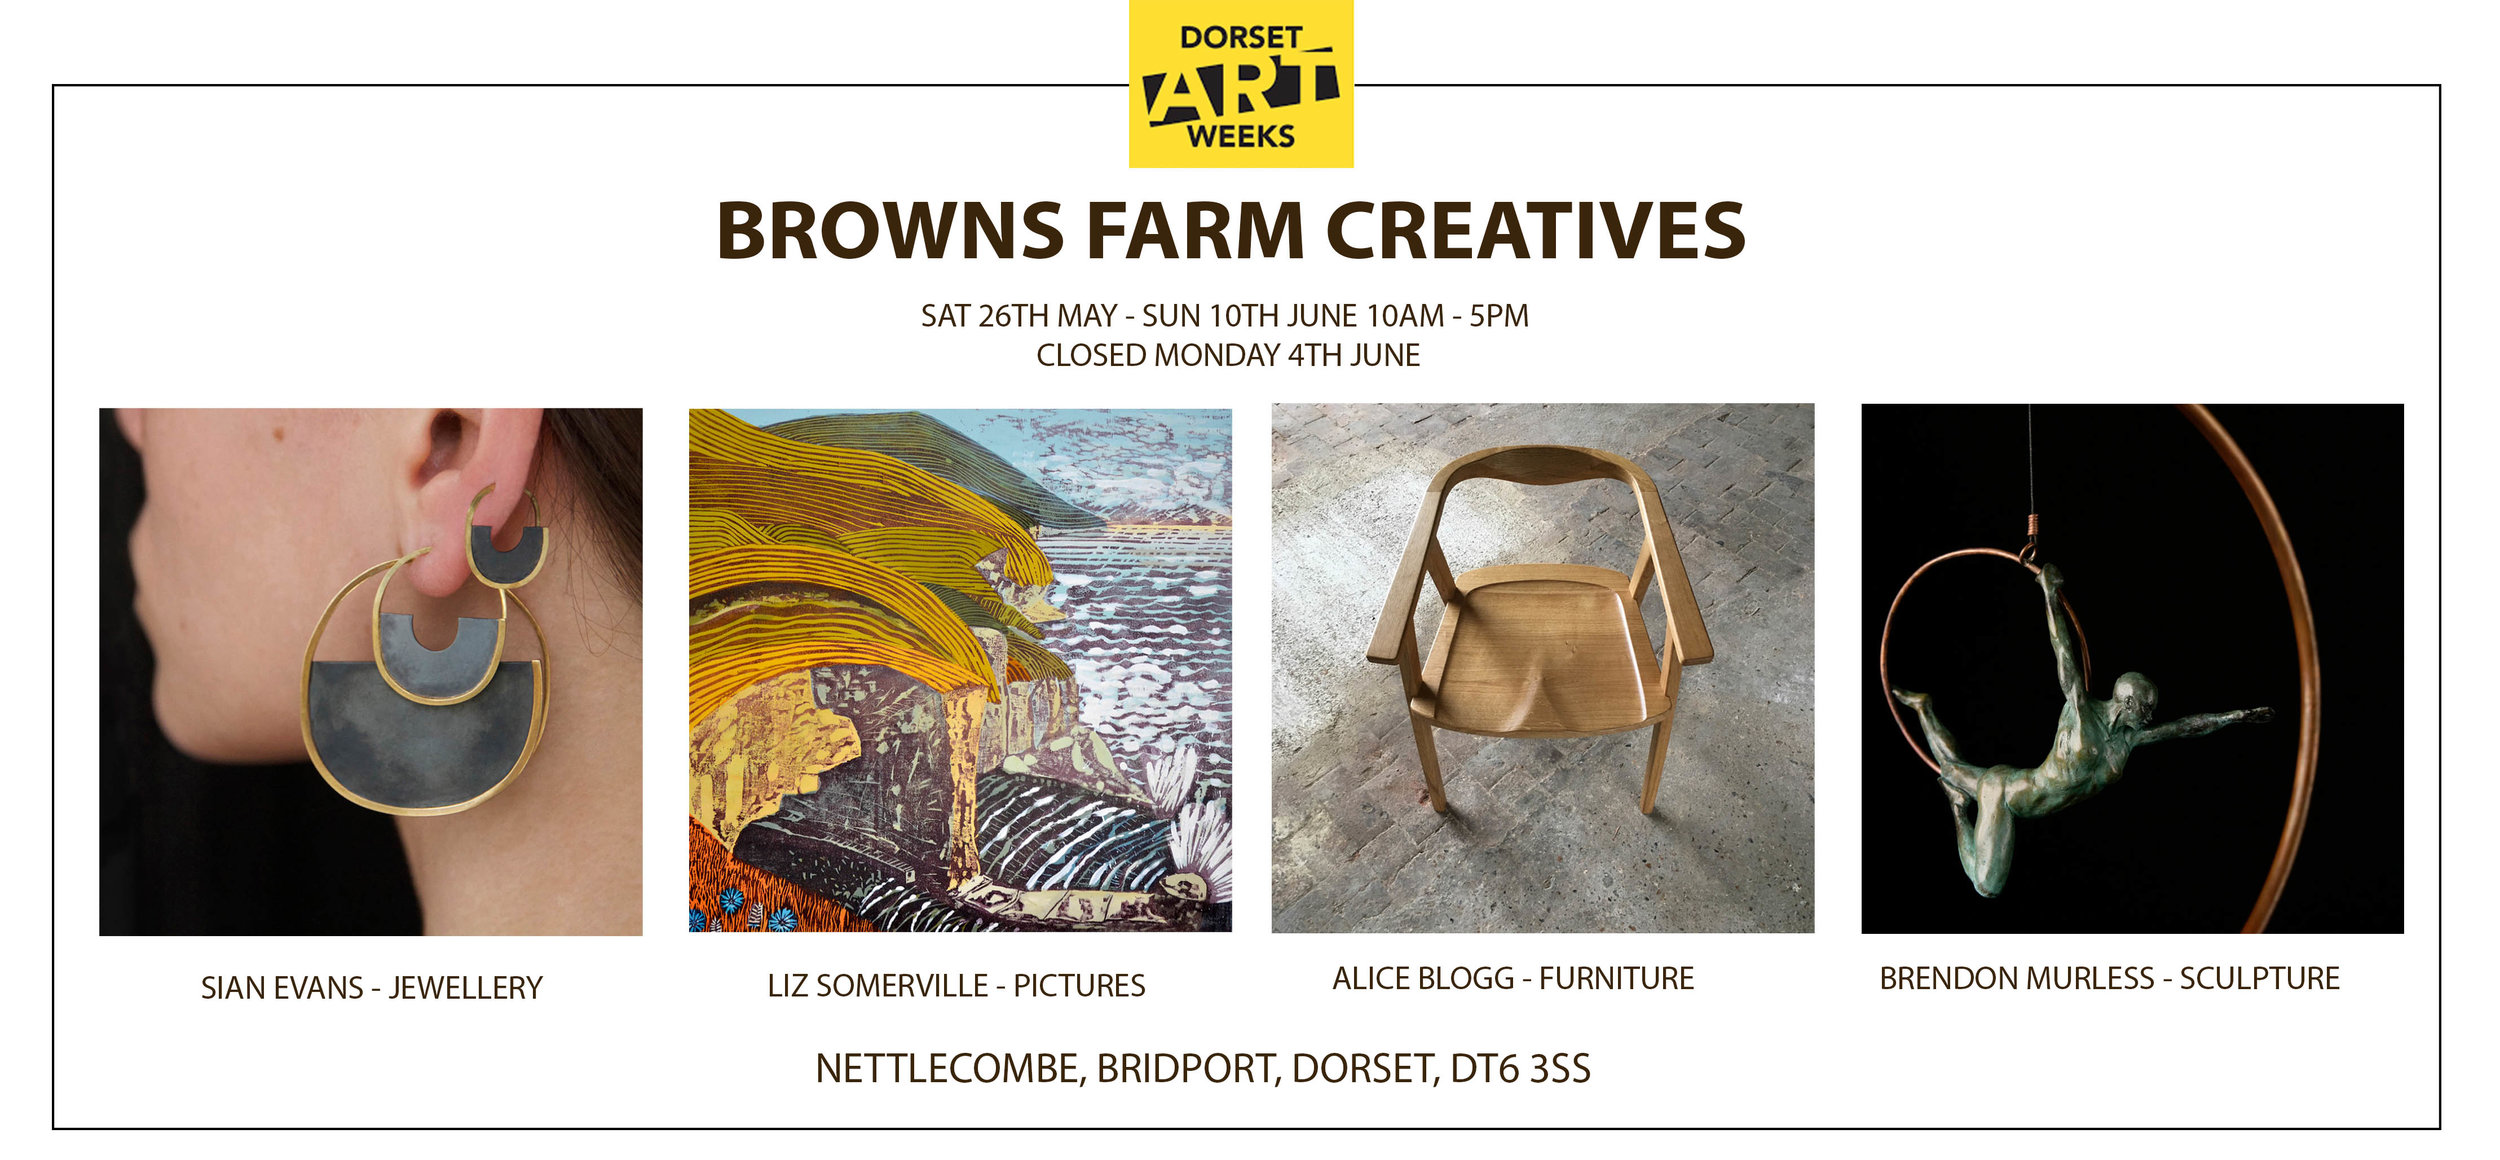 Dorset Art Weeks 2018